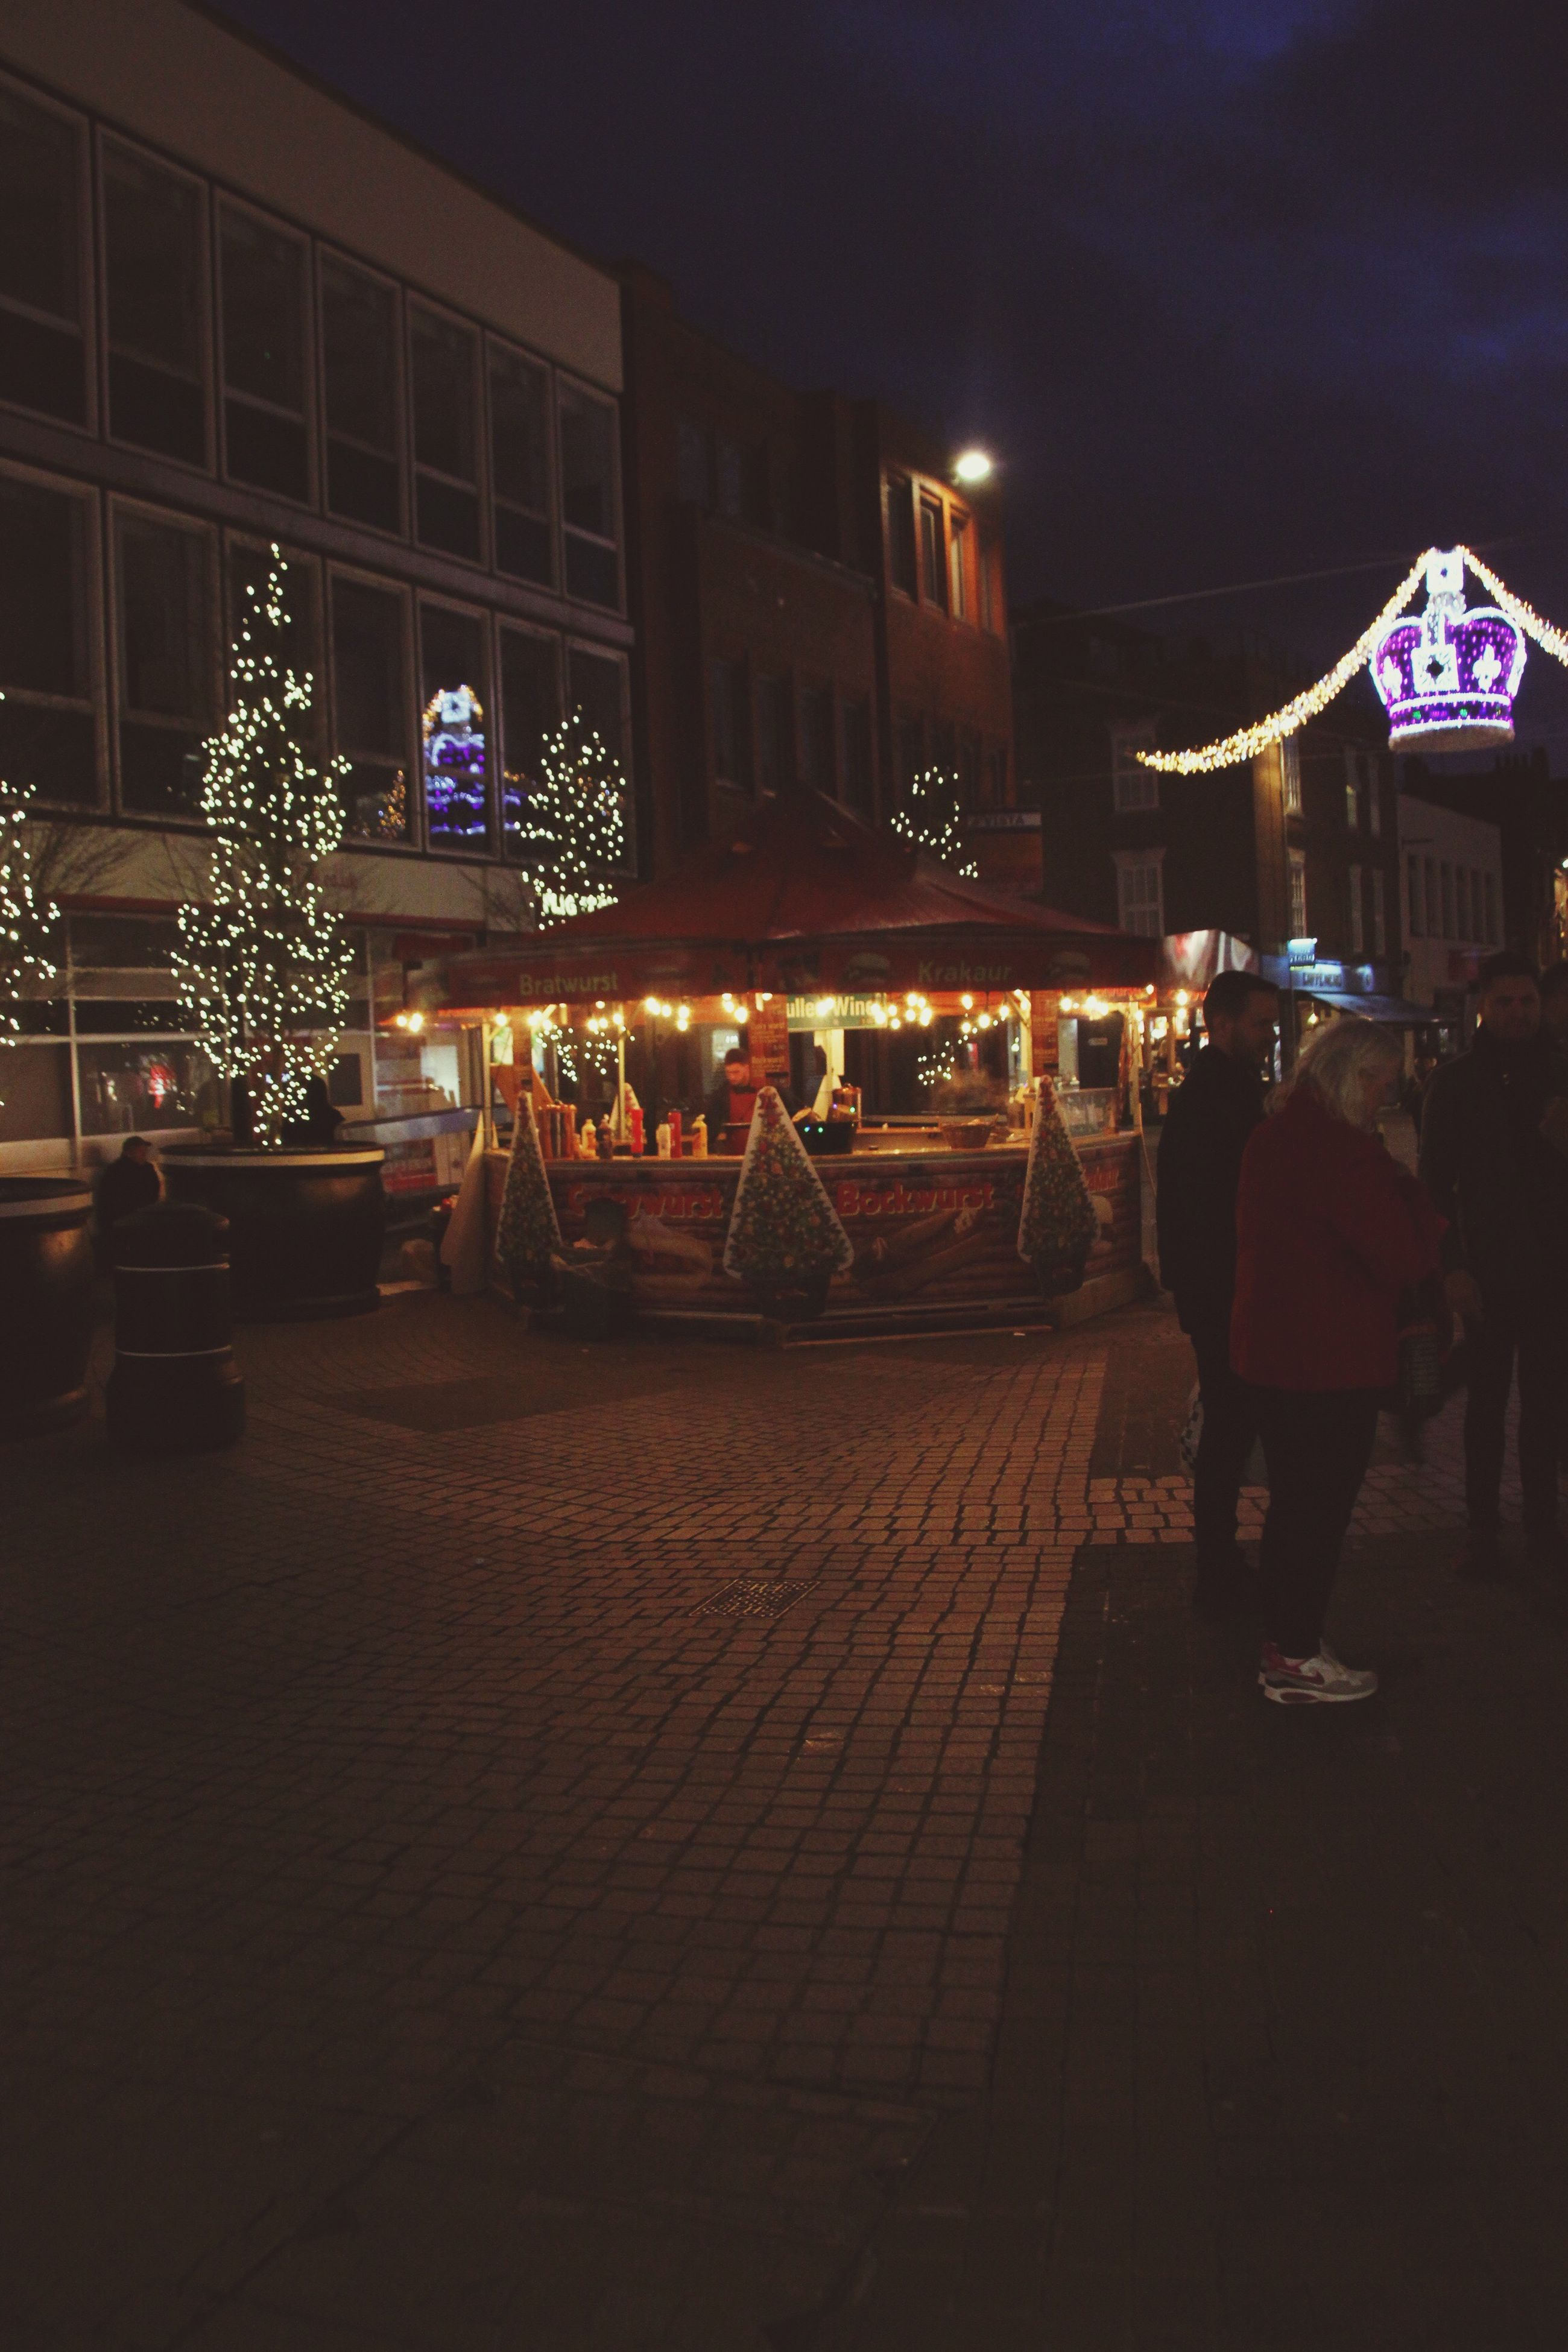 night, illuminated, nightlife, christmas lights, bar - drink establishment, built structure, city, christmas, travel destinations, christmas decoration, architecture, people, men, adult, outdoors, adults only, pub, sky